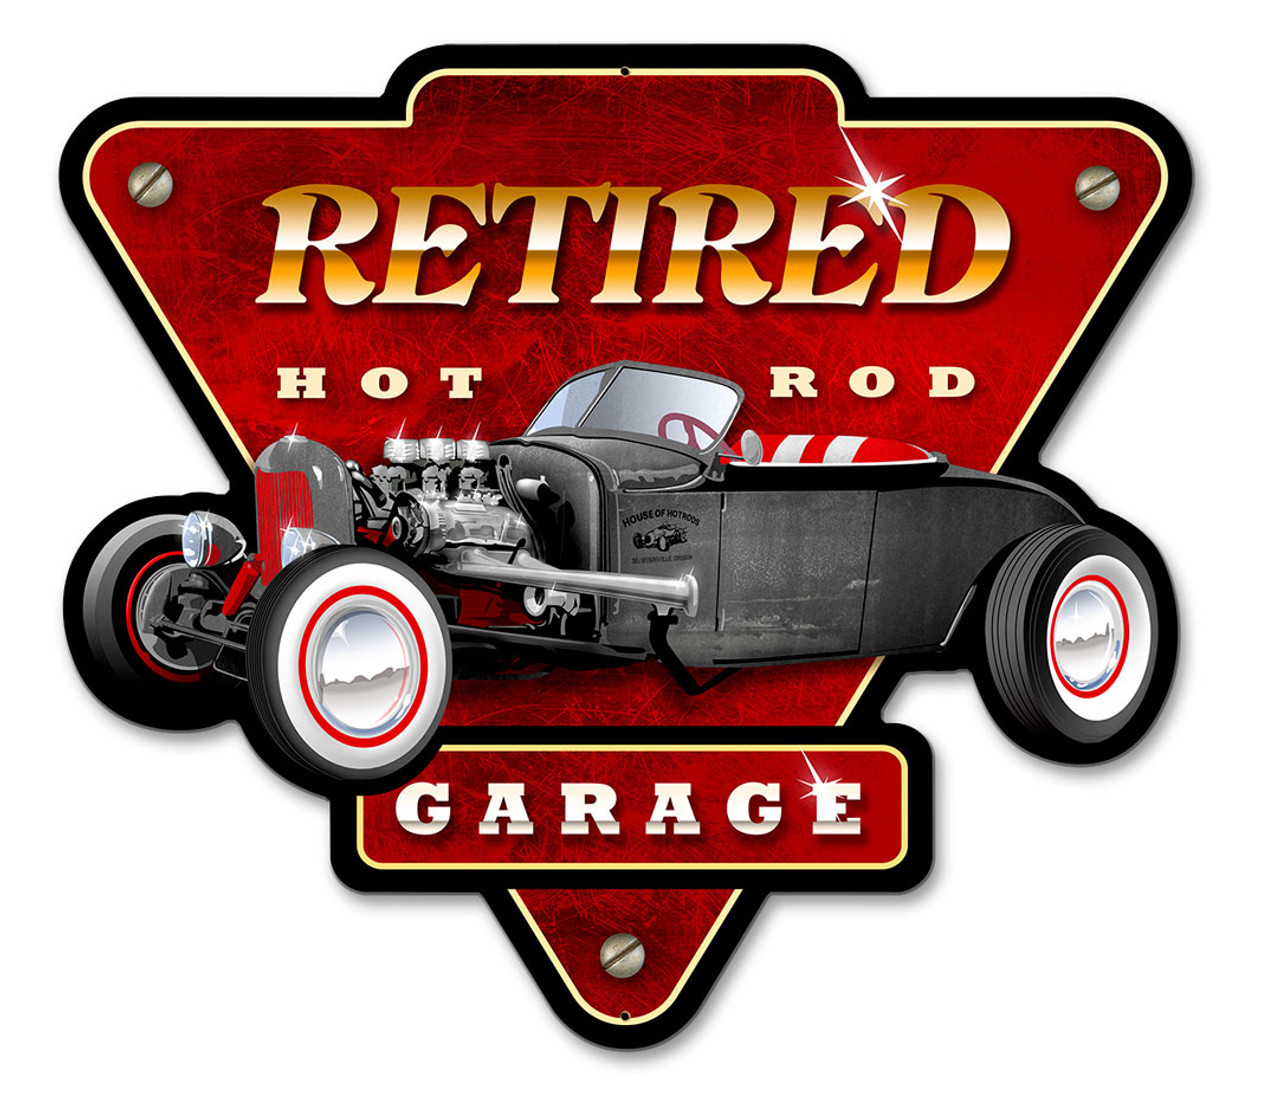 Retired Hot Rod Garage Metal Sign 15 x 14 Inches